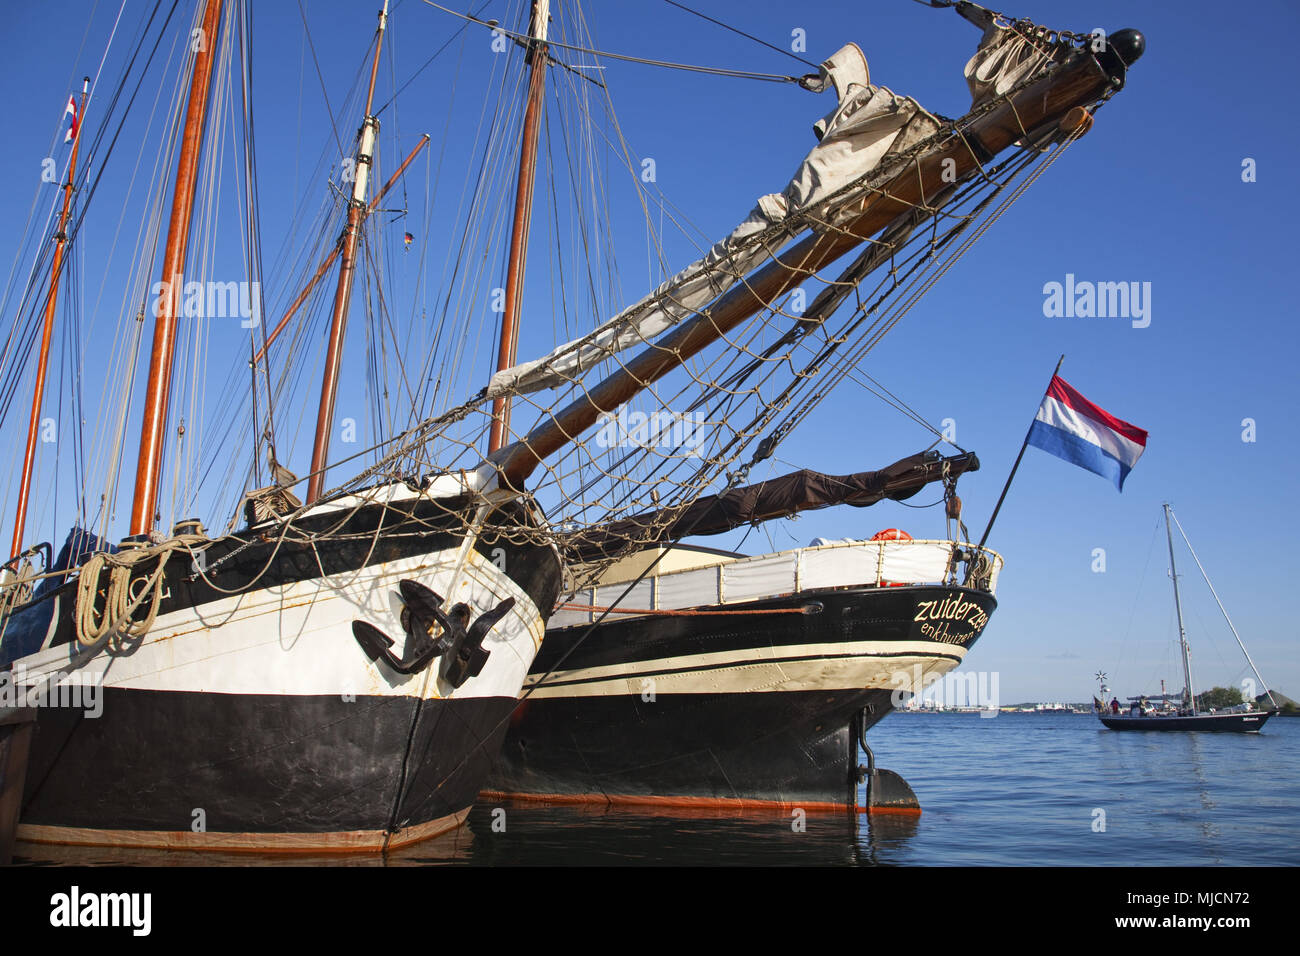 Sailboats in the harbour of Kiel, Holtenau, Schleswig - Holstein, North Germany, Germany, - Stock Image